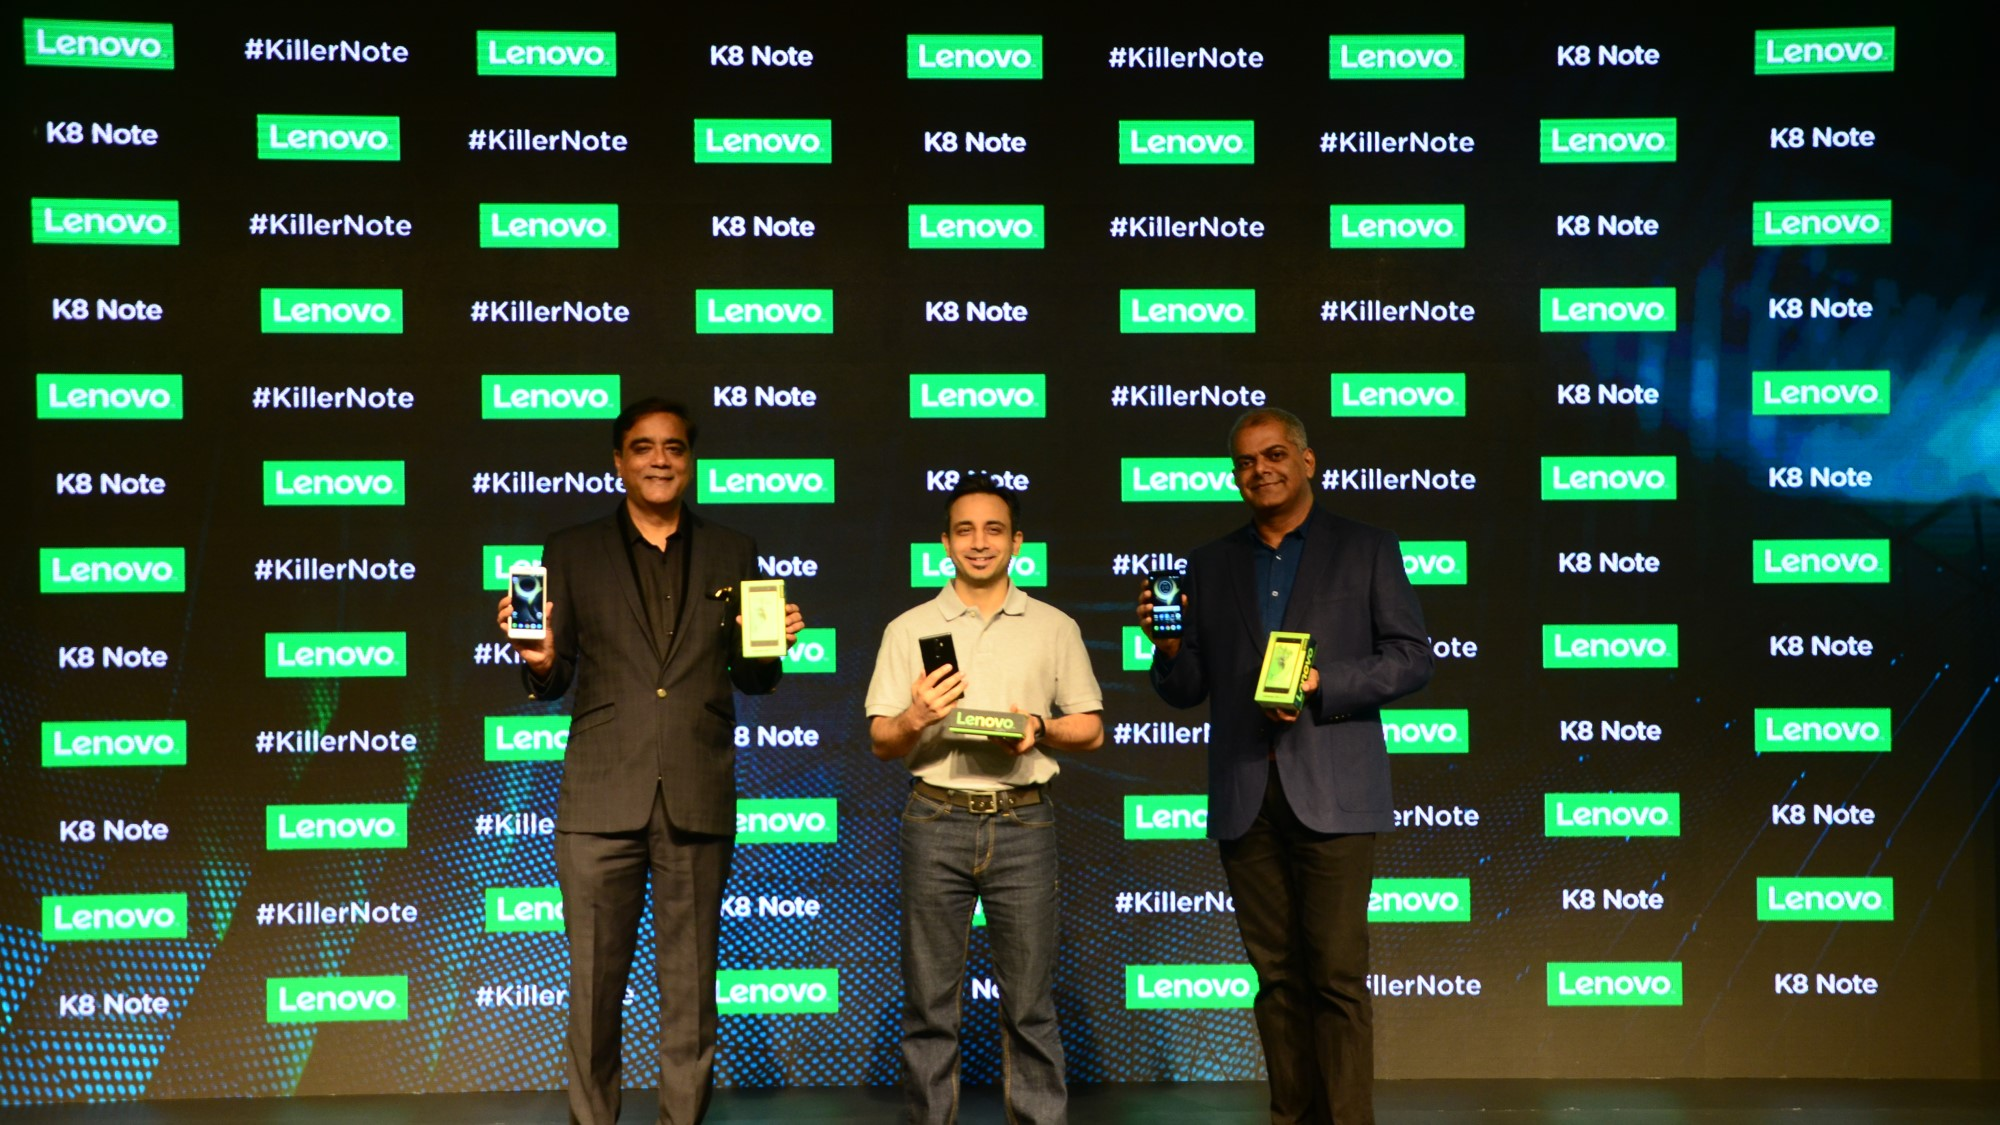 Lenovo Uncages a #KillerNote to